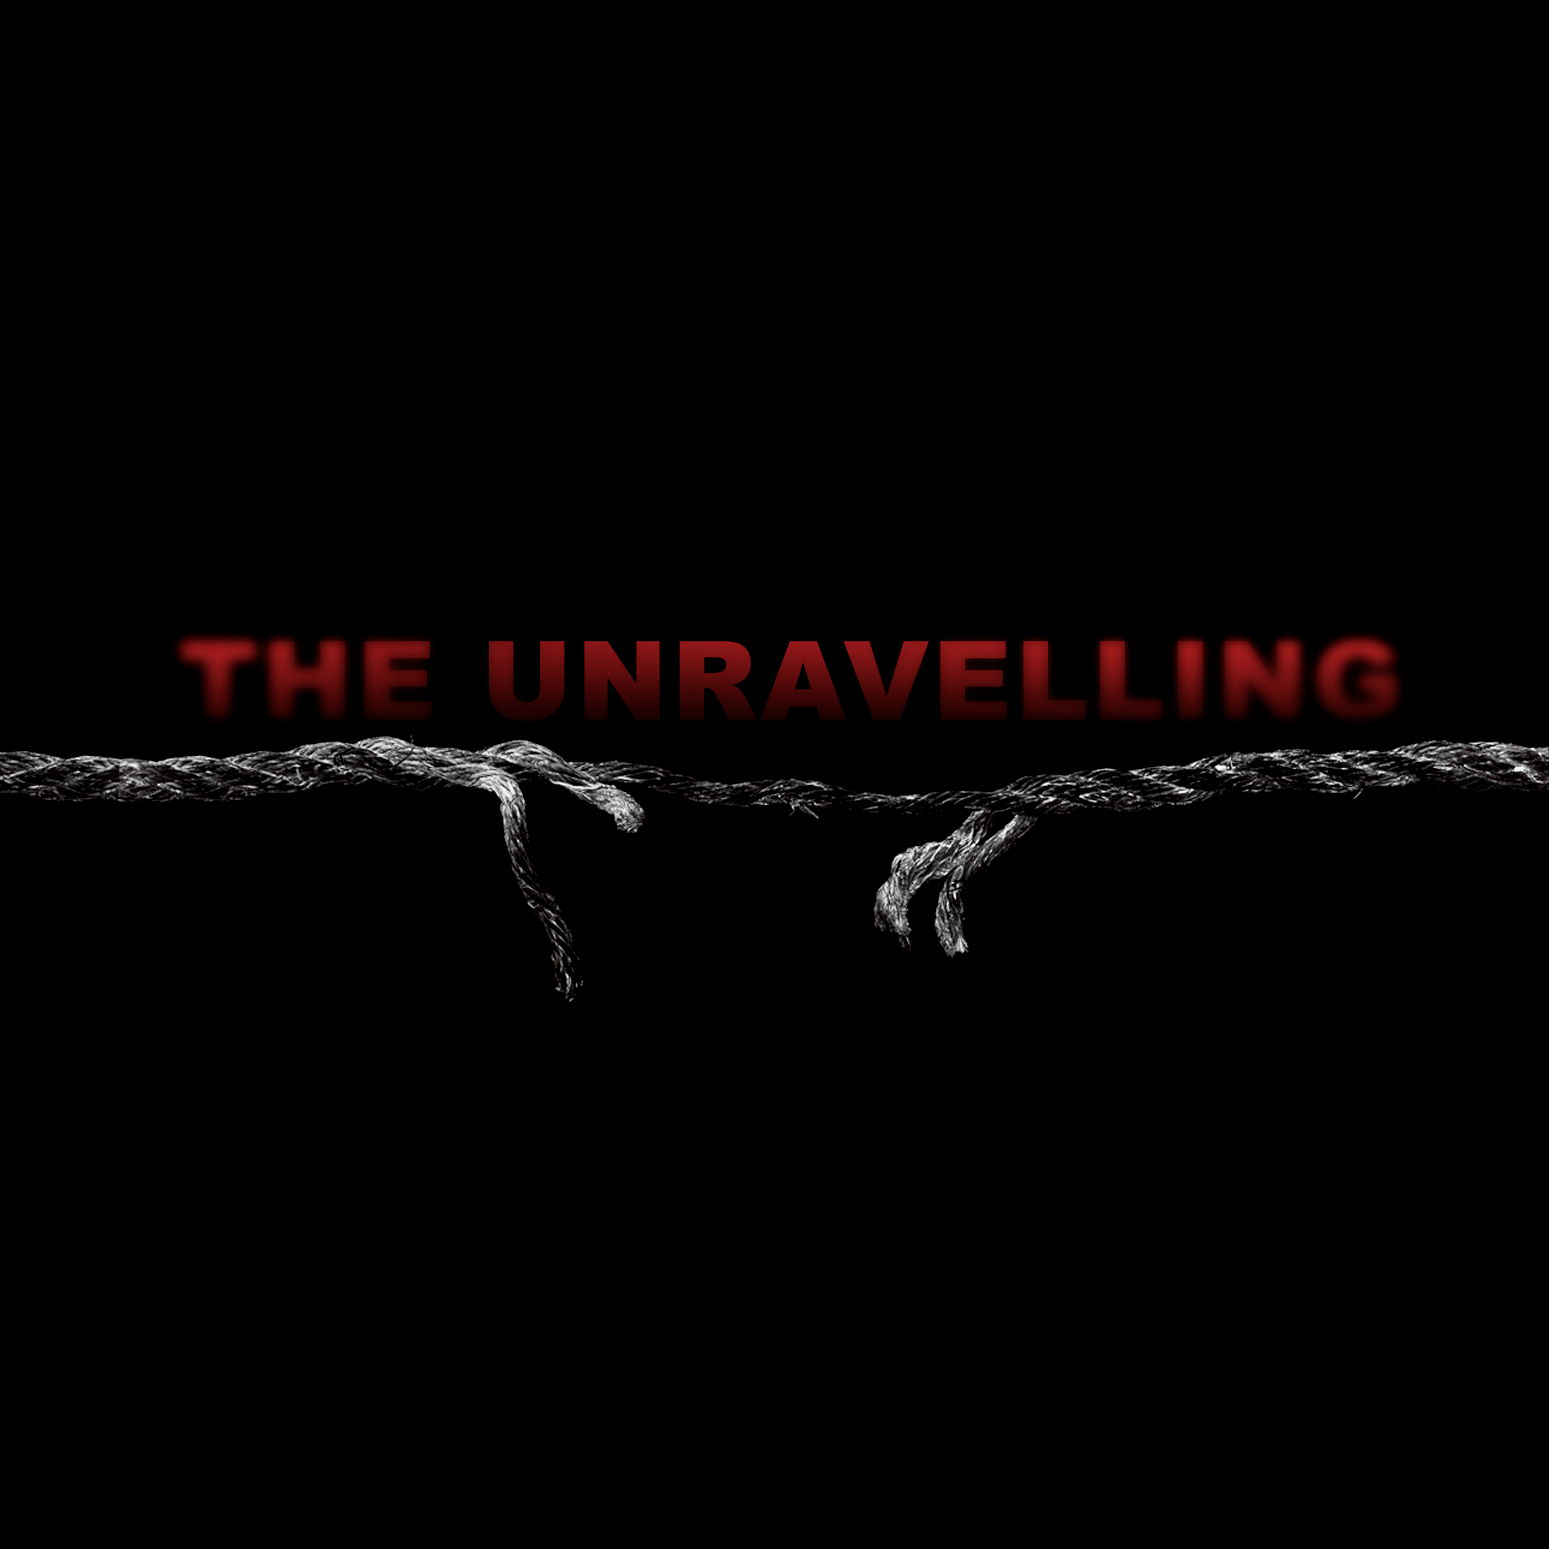 The Unravelling 13:  A People Drowning